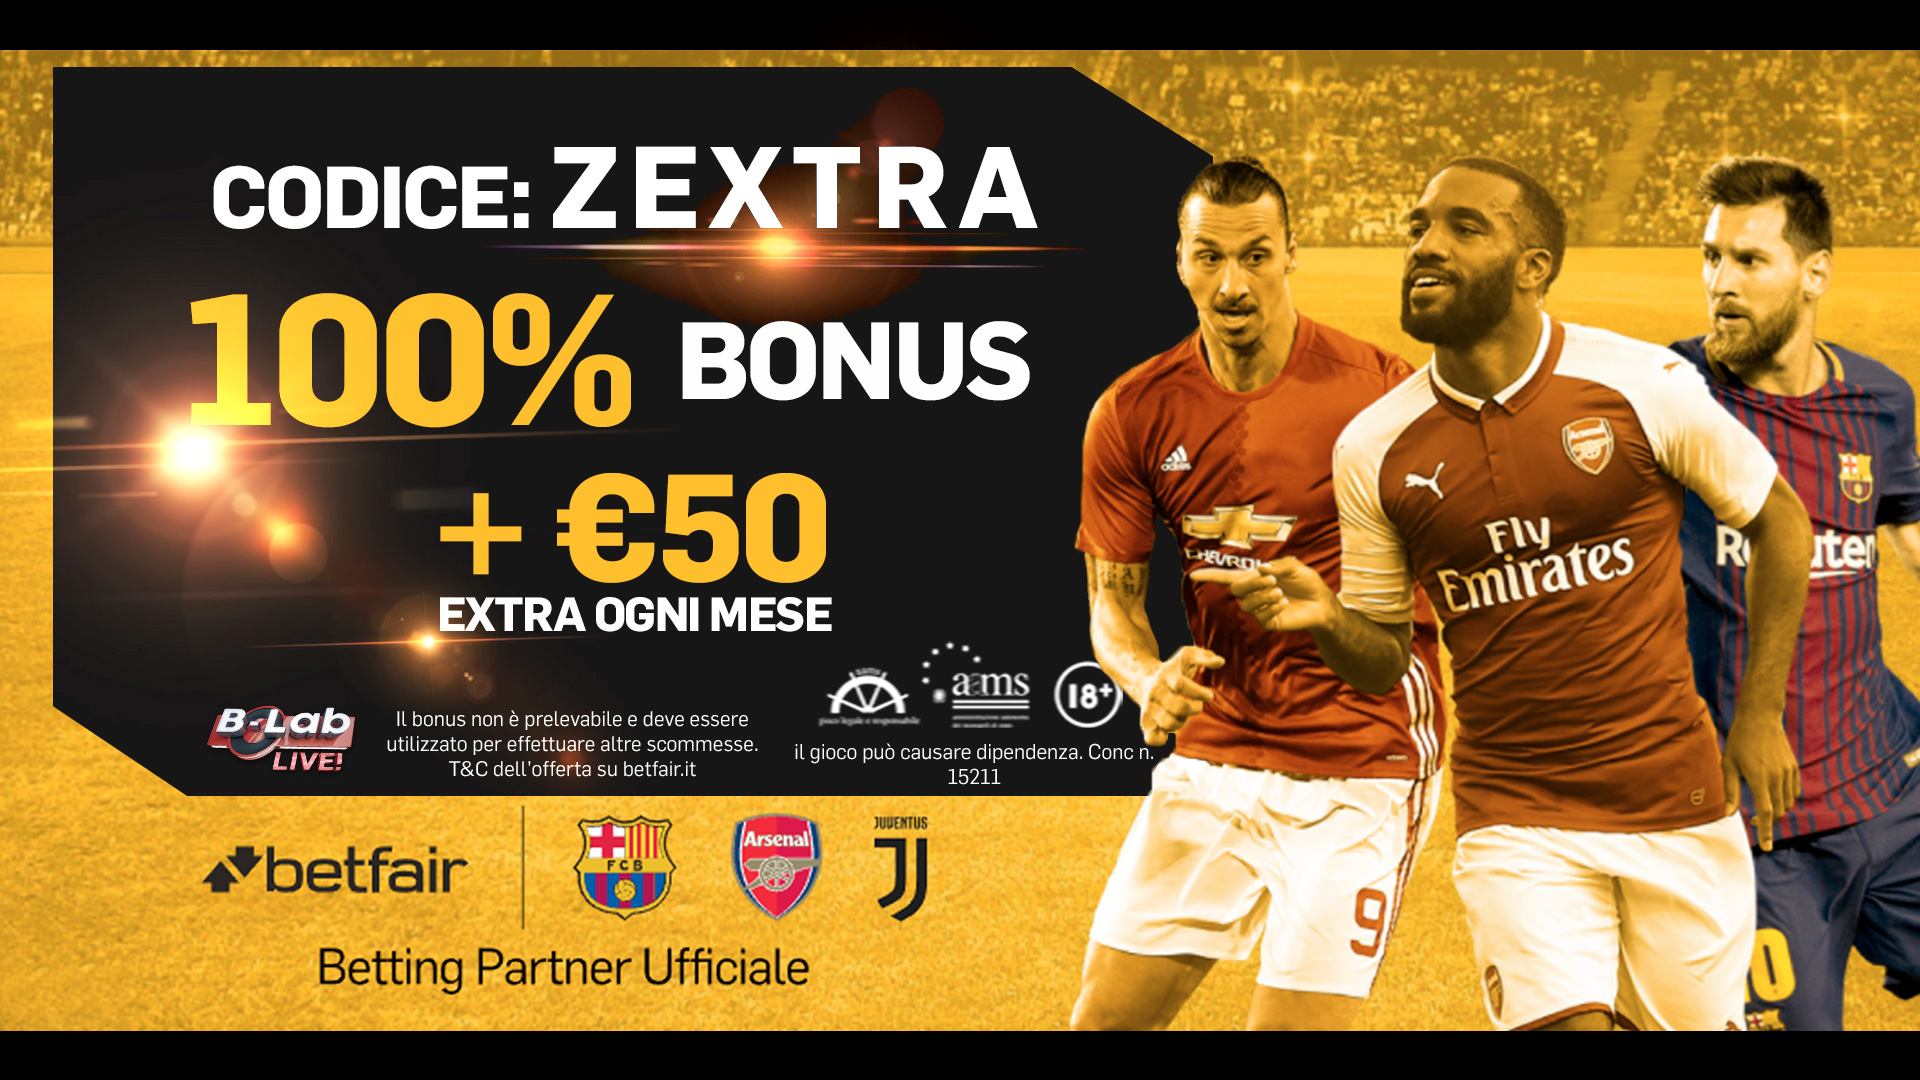 Pronostici Inghilterra 30 marzo e codice promo ZEXTRA: Championship, League One, League Two IN UN CLICK!